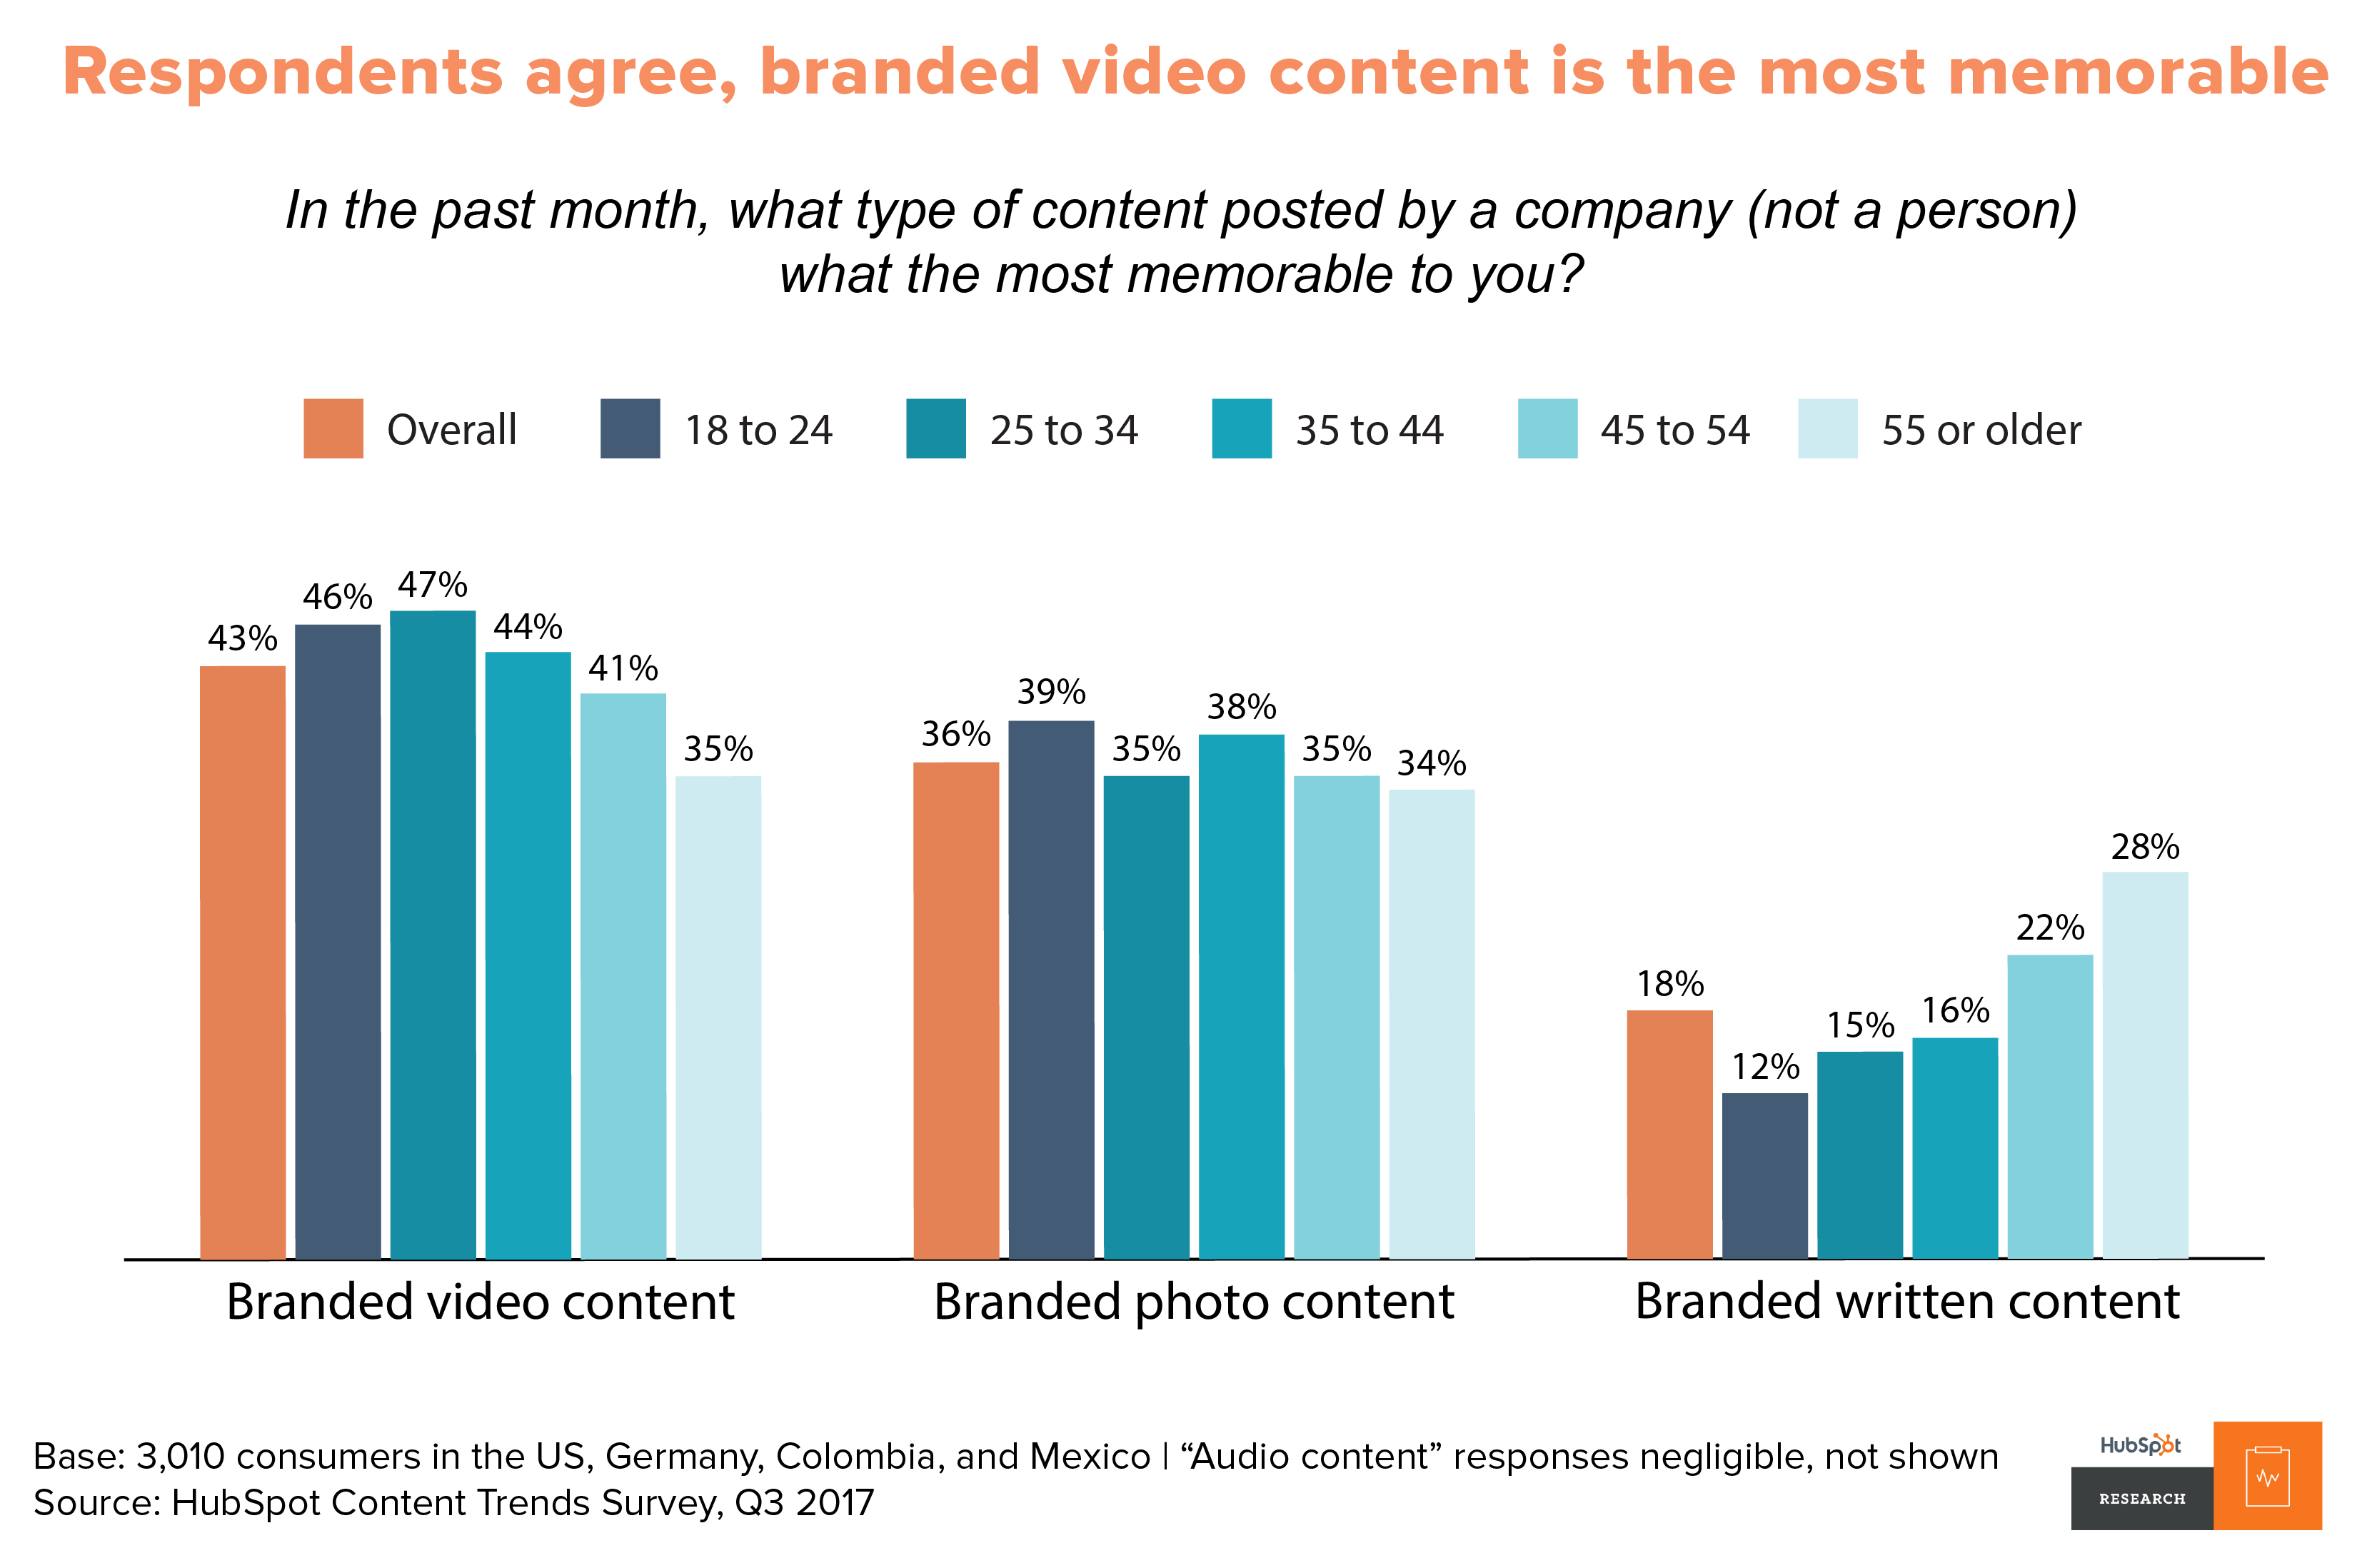 graph from HubSpot that shows that users remember videos more than other content